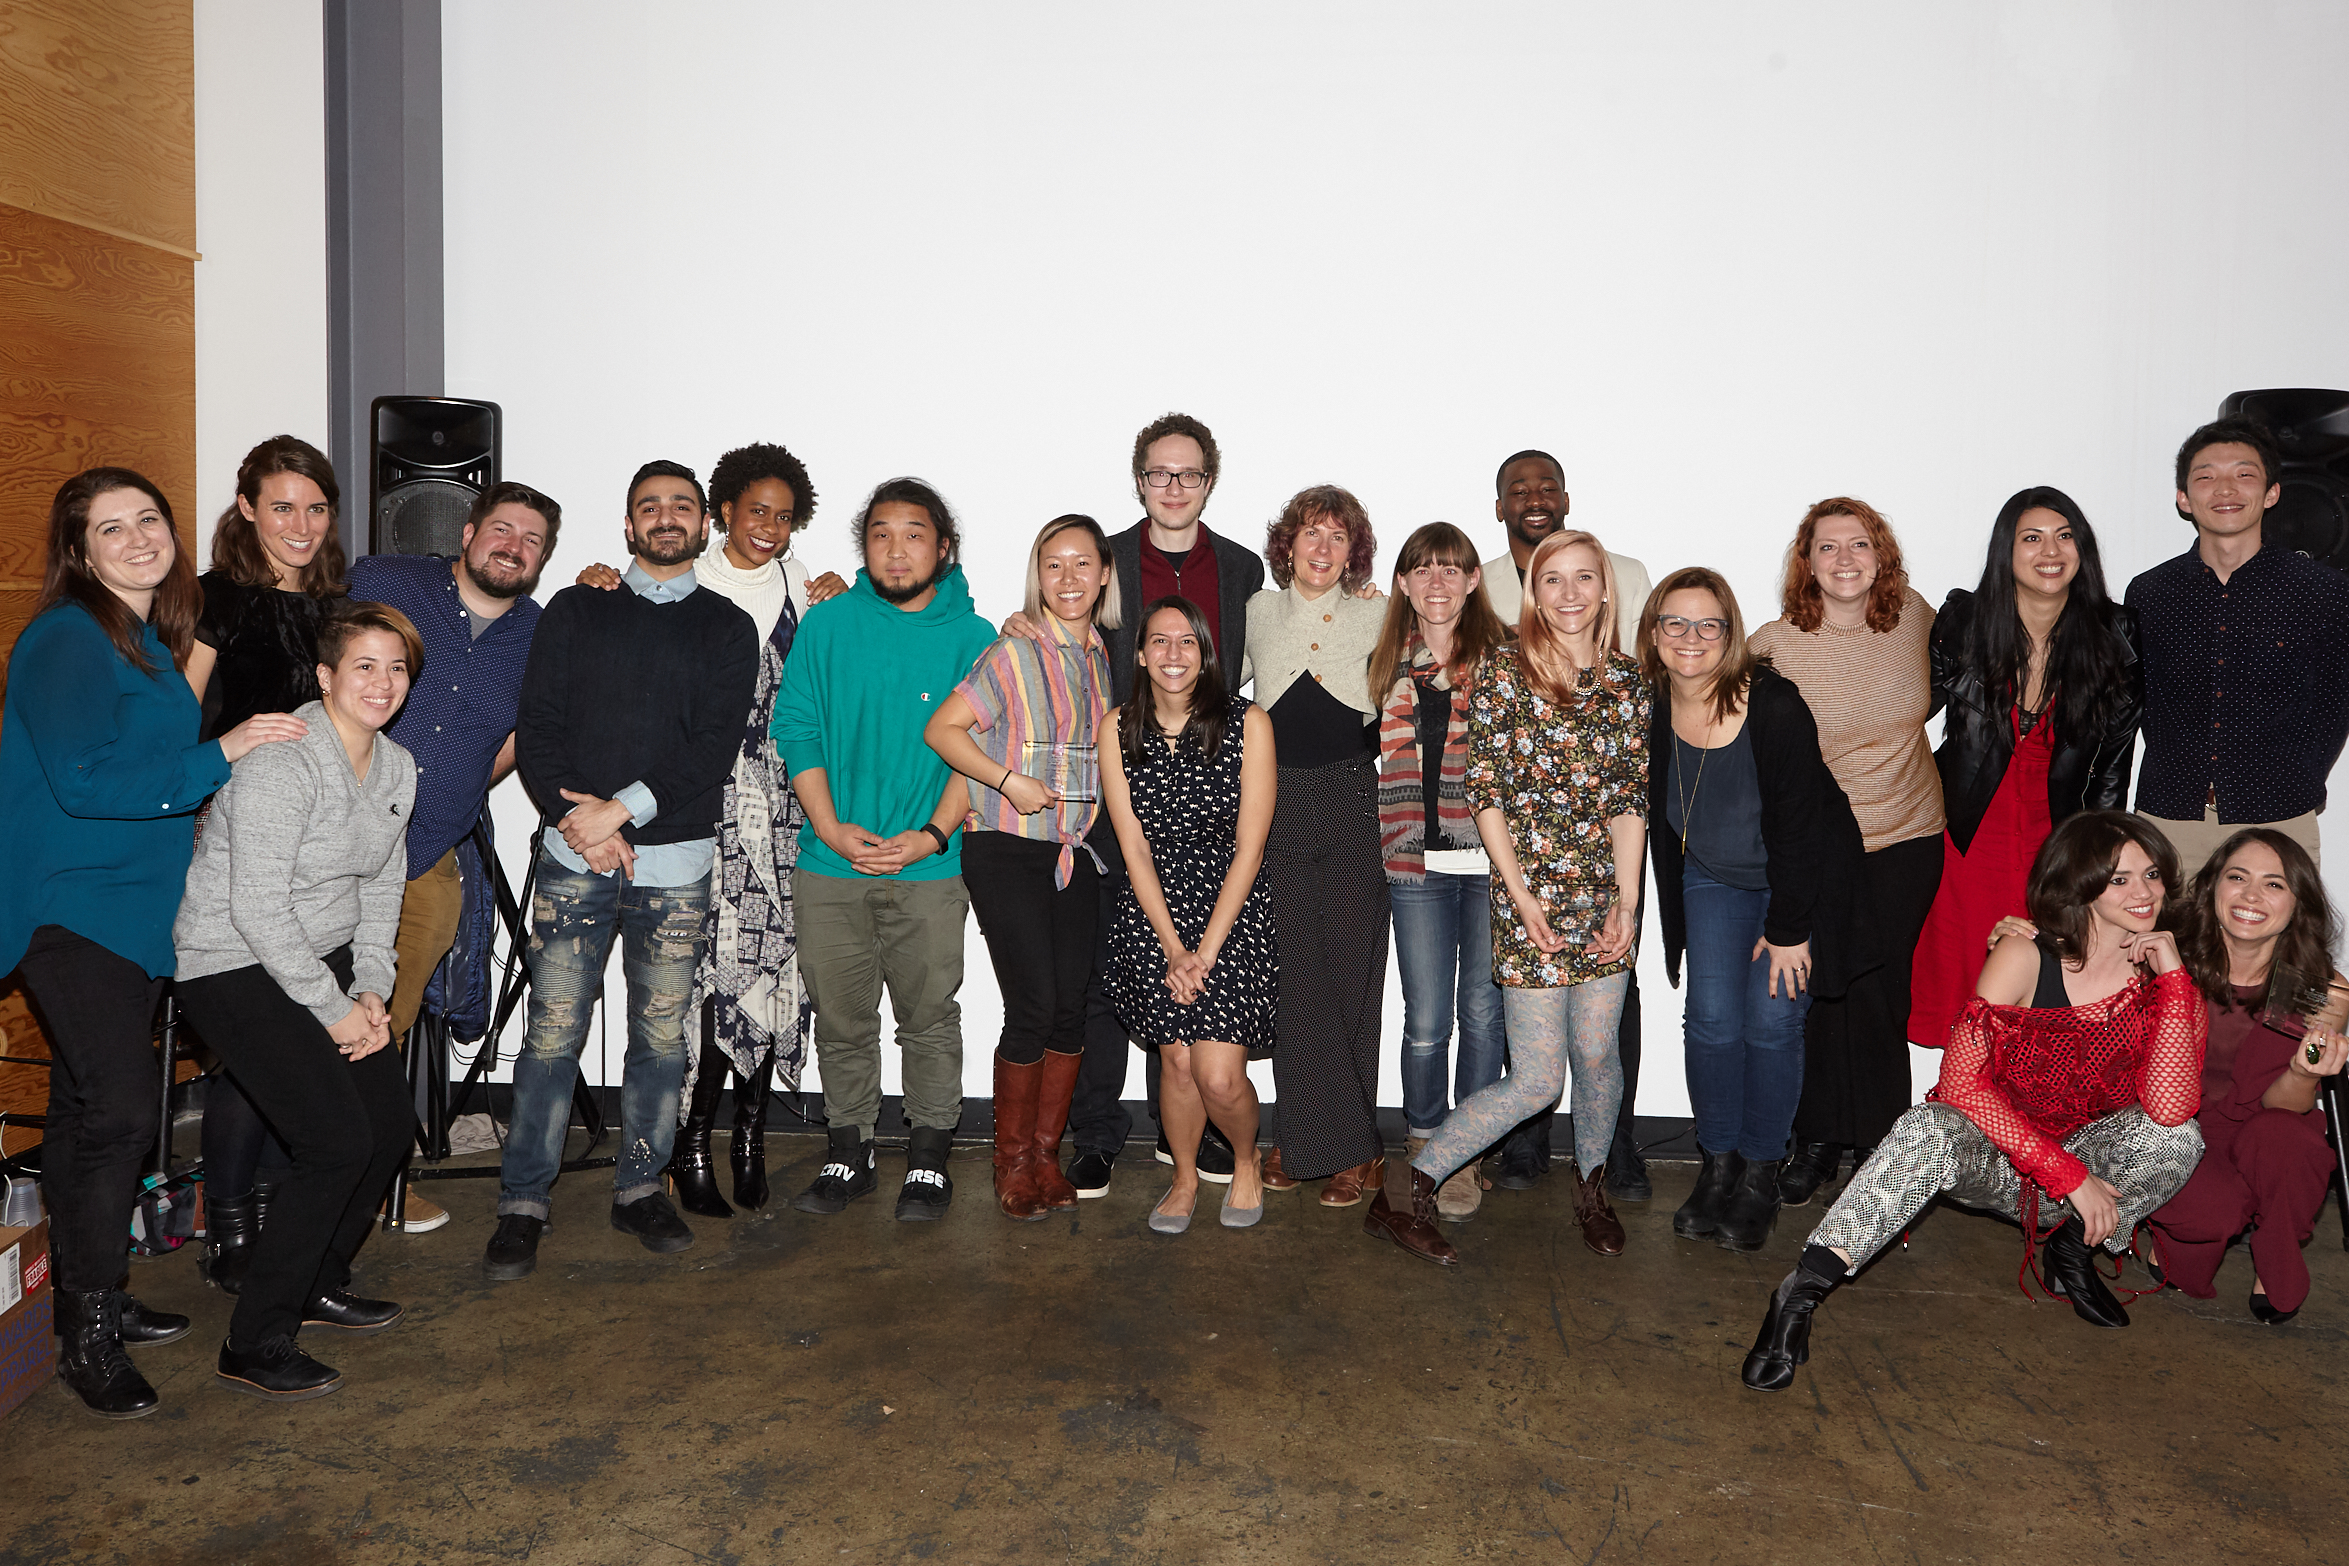 Our team with all the talented filmmakers of the night!